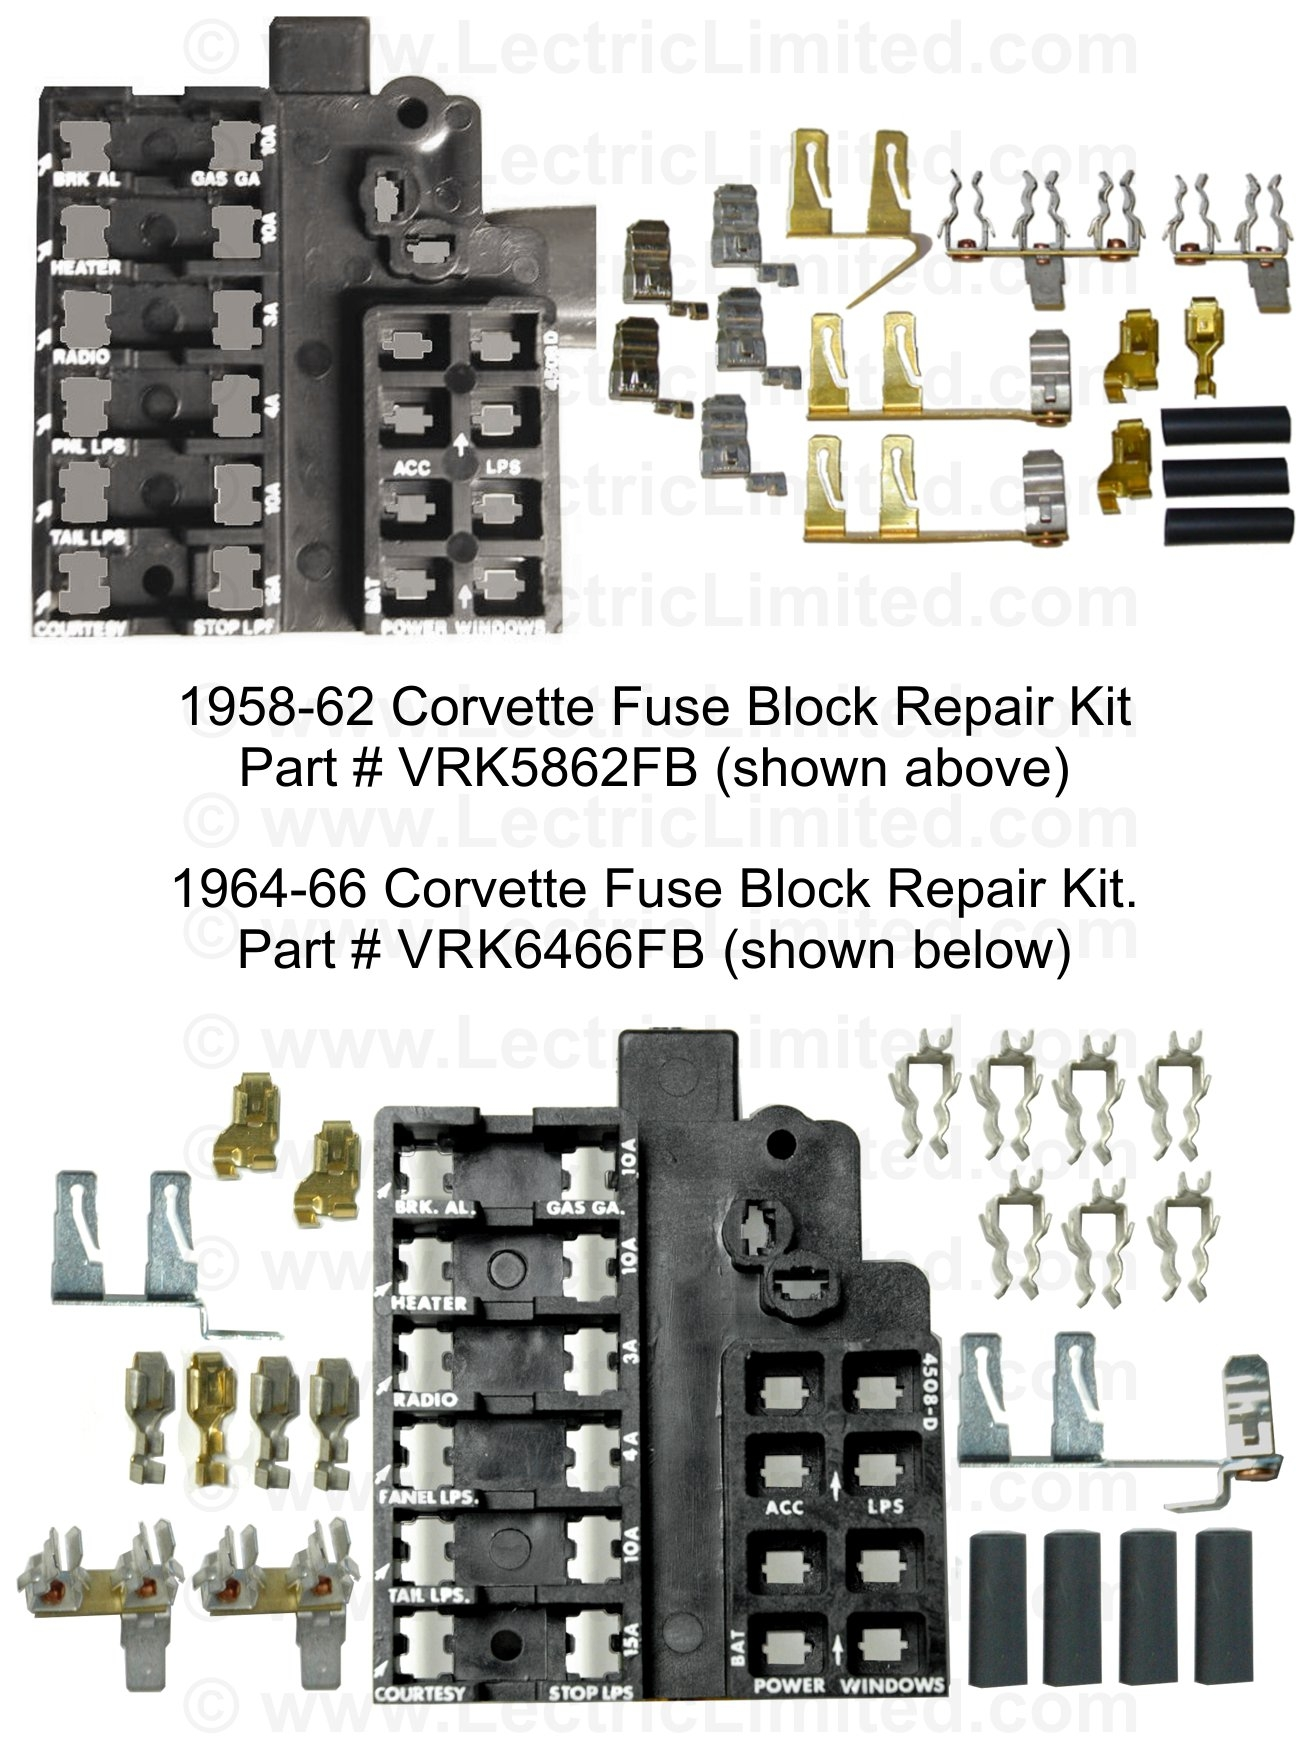 Repair Components 1972 C10 1961 C10 Fuse Box